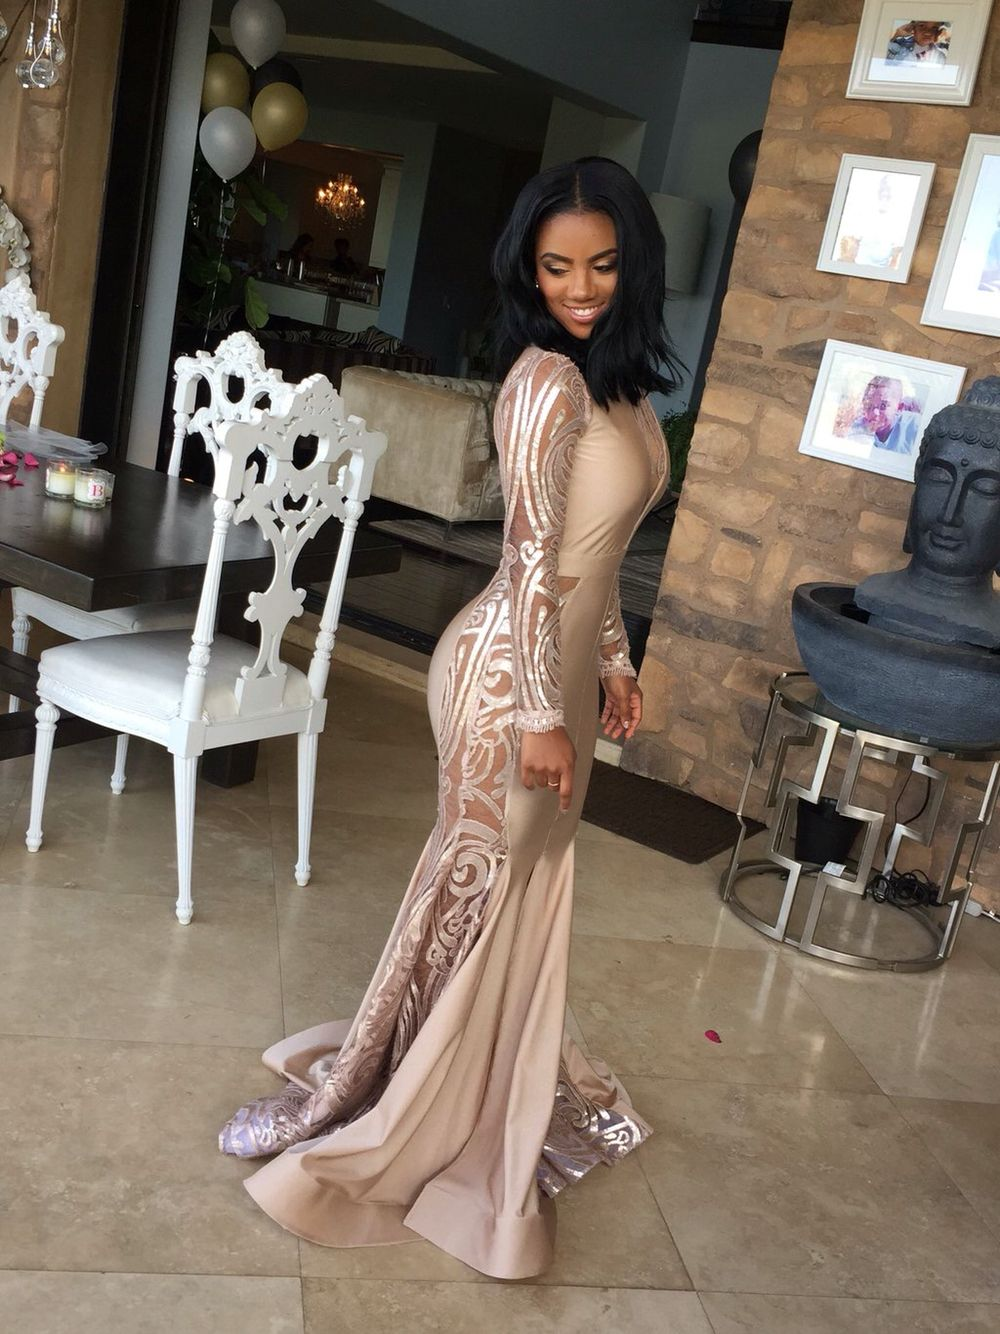 924d3336a7 Pin by Monique Jones on prom | Prom girl dresses, Black girl prom ...